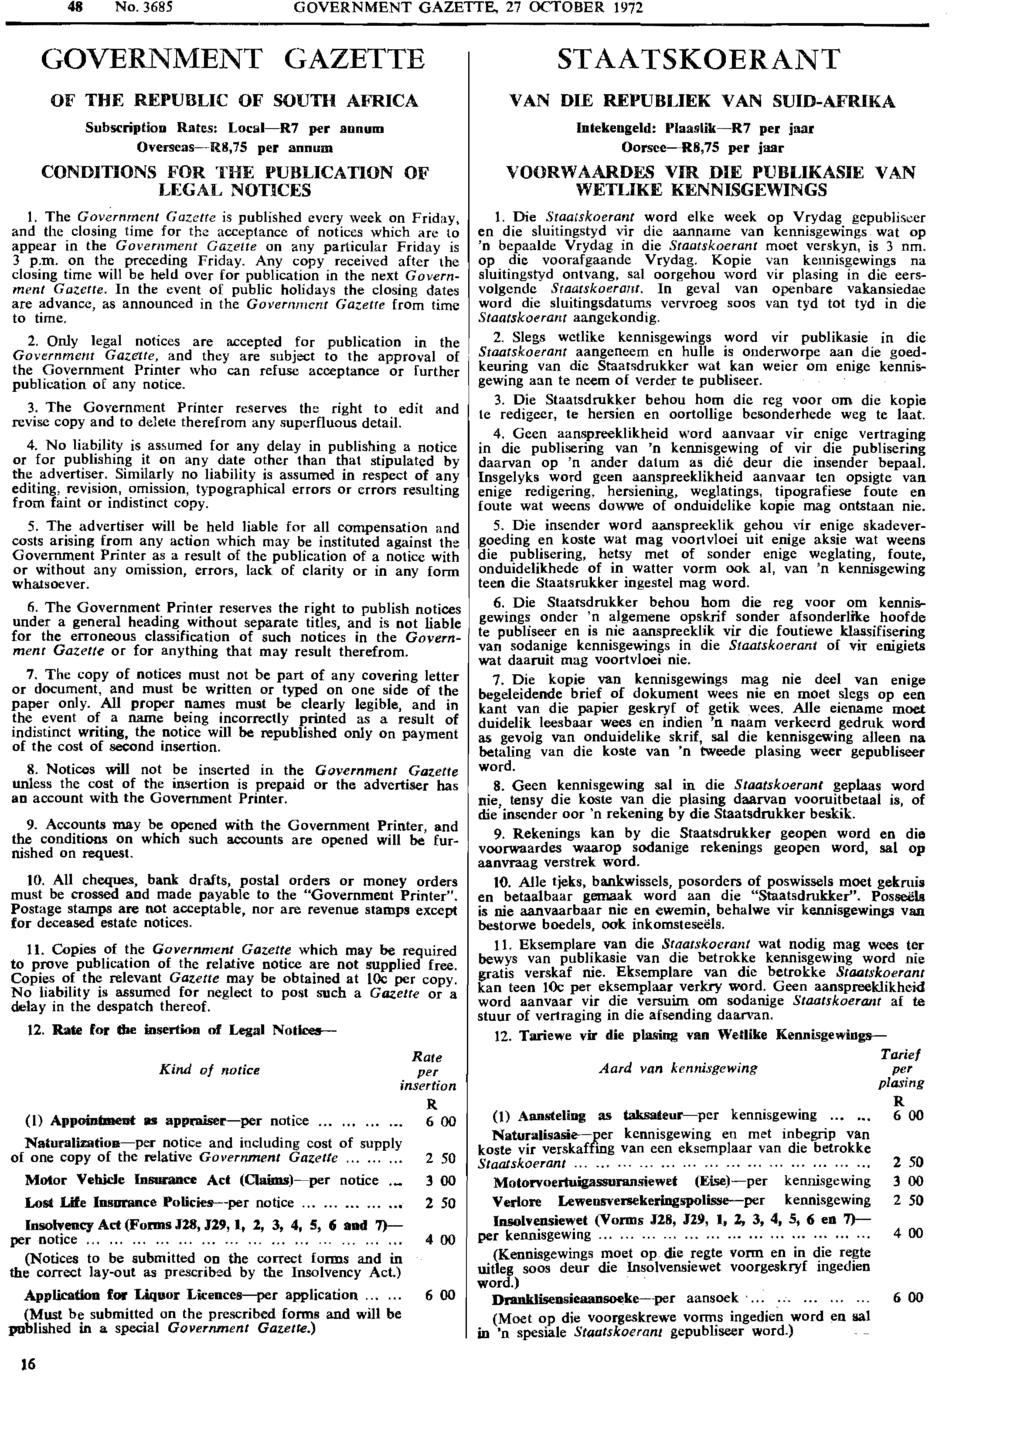 48 No. 3685 GOVERNMENT GAZETTE, 27 OCTOBER 1972 GOVERNMENT GAZETTE OF THE REPUBLIC OF SOUTH AFRICA Subscription R.ates: Local-R7 per annum Overseas-R8,75 per annum CONDITIONS FOR THE PUBLICATION OF l.